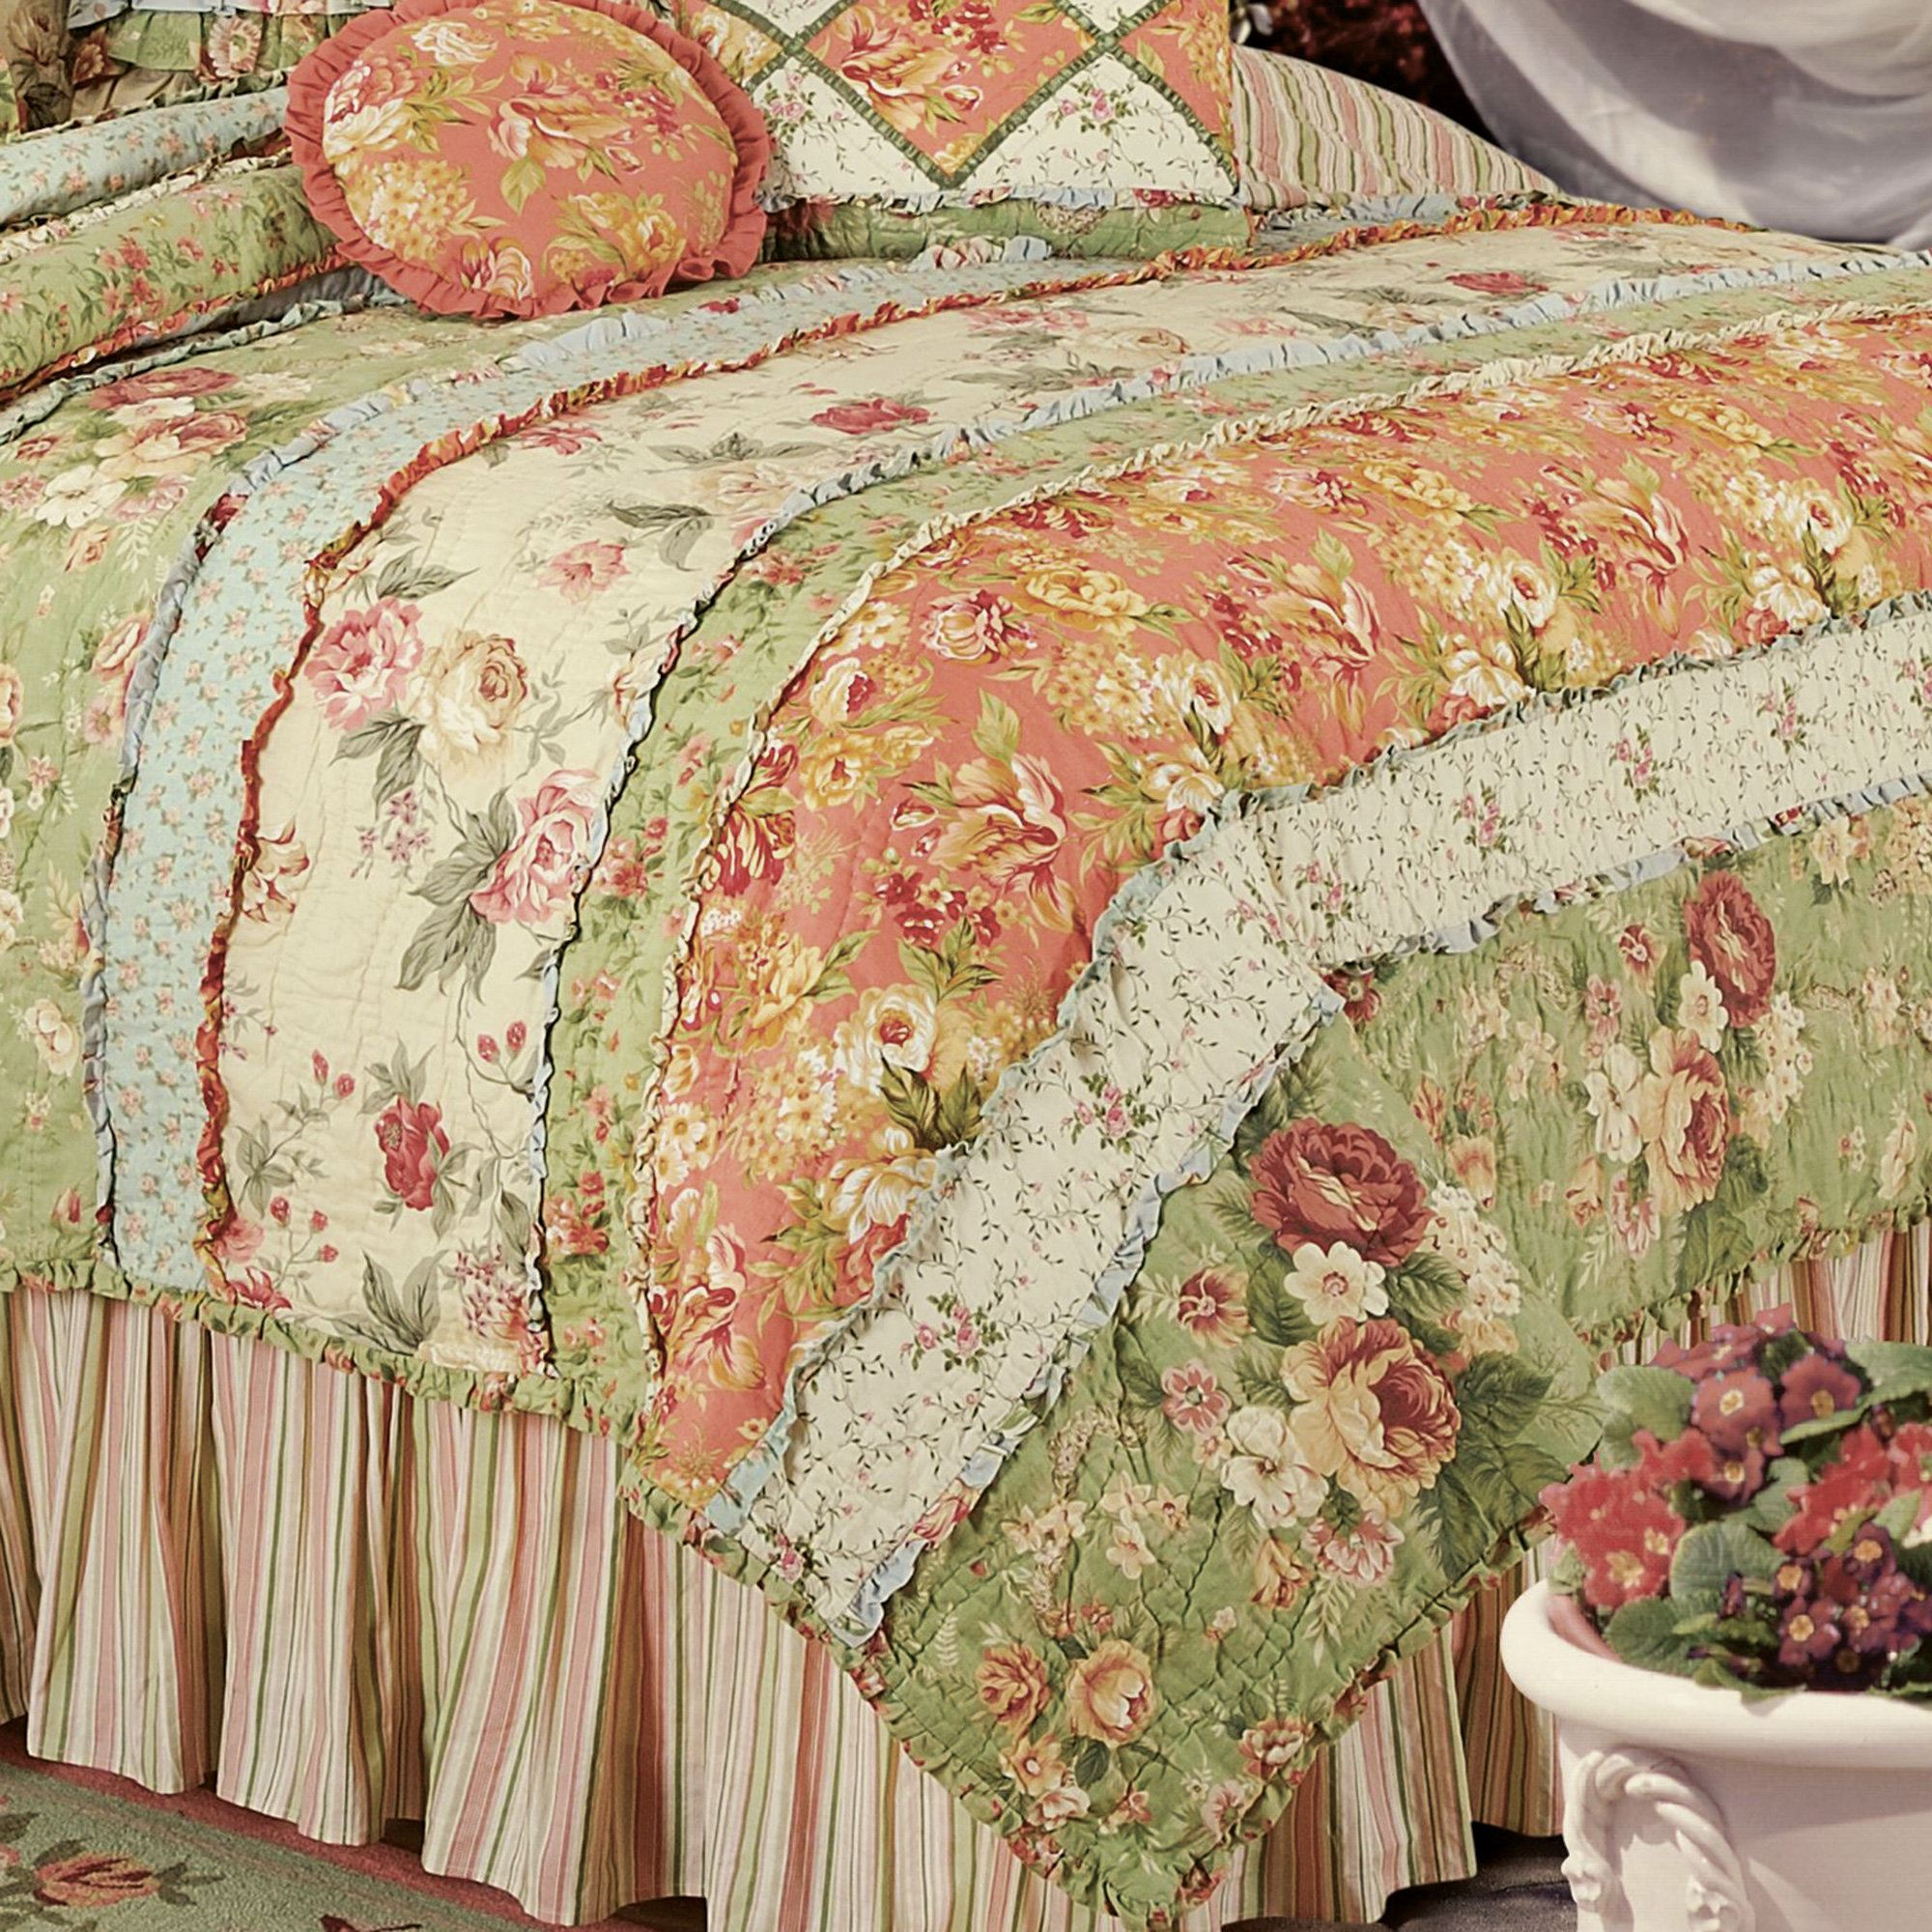 Garden Dream All Cotton Quilt Bedding : cotton for quilting - Adamdwight.com